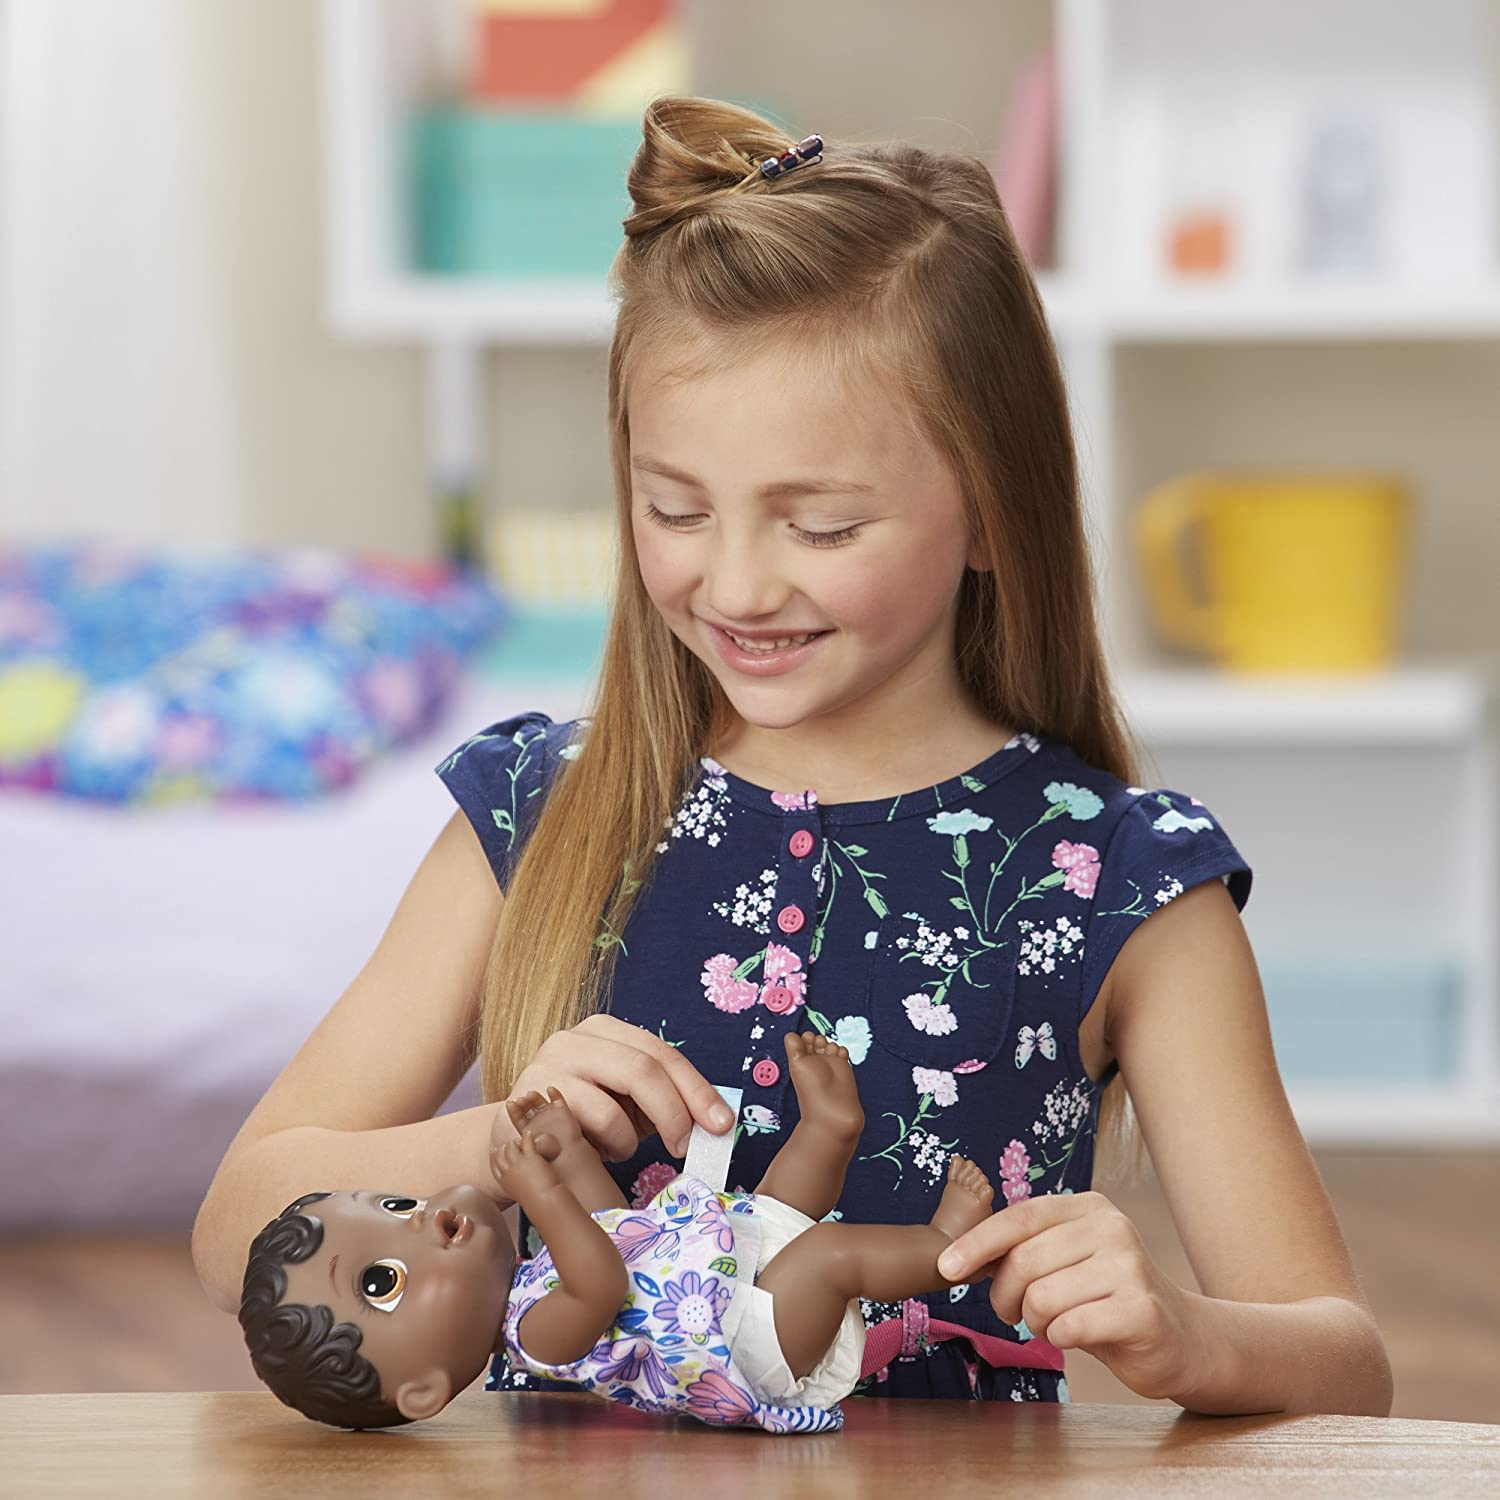 Baby Alive Lil SIPS Baby HAS-E0308-AX00 Lil Sips Baby Girl Doll Hasbro Dolls